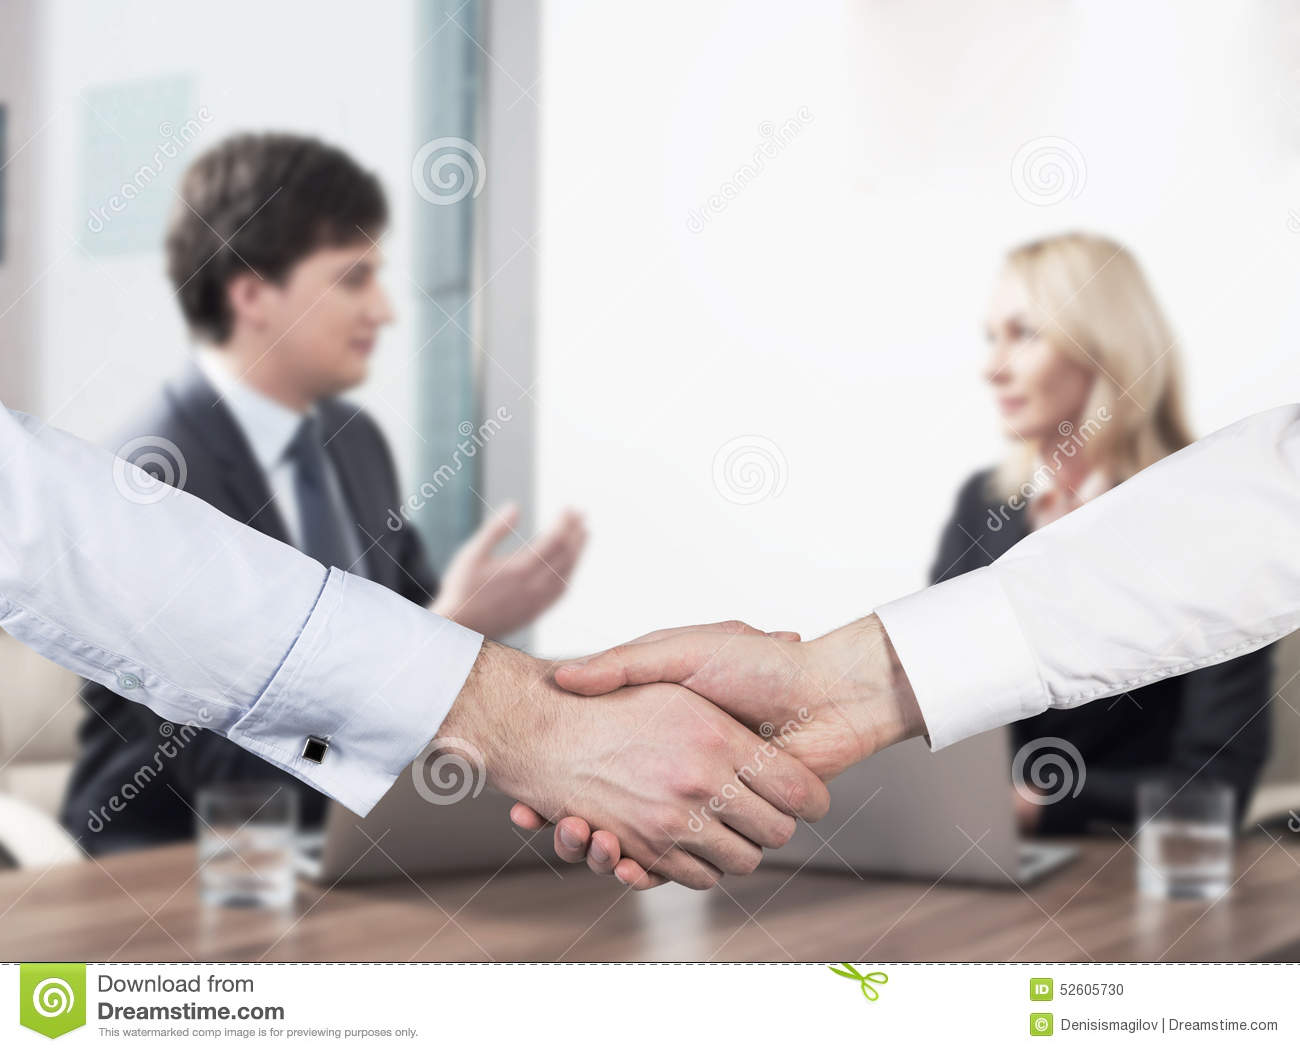 Business people handshake greeting deal at work photo free download - Couple At The Business Meeting Handshake As A Concept Of Successful Deal Stock Photo